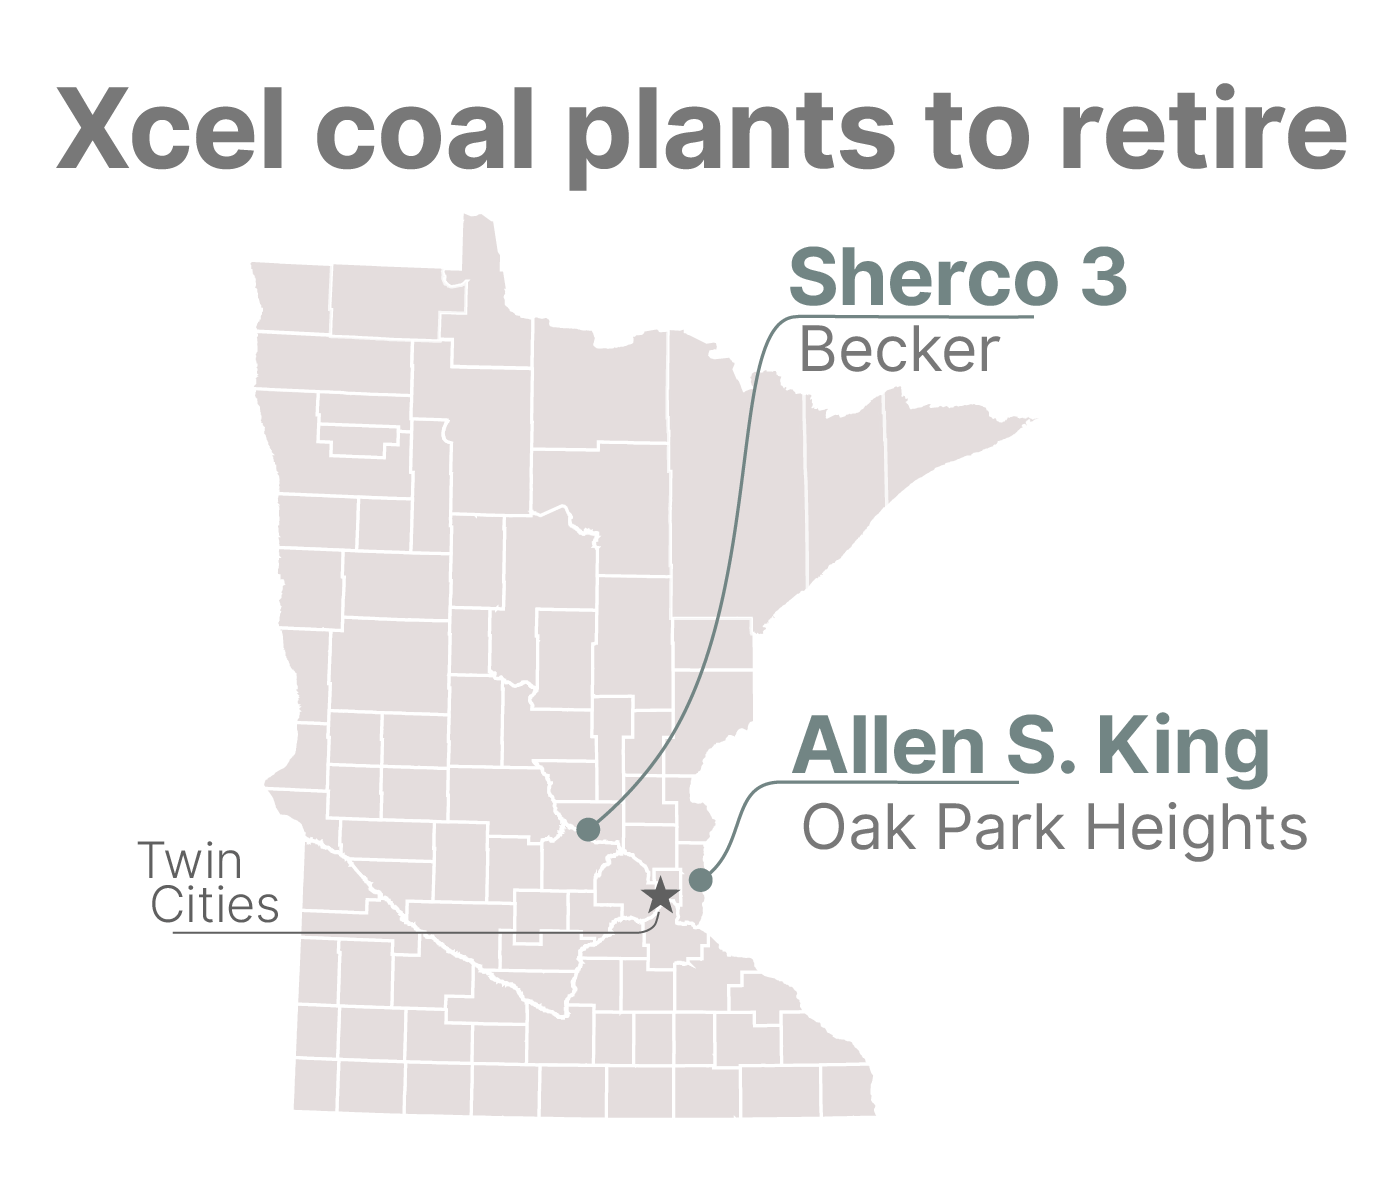 The King plant will retire in 2028 and Sherco 3 in 2030.